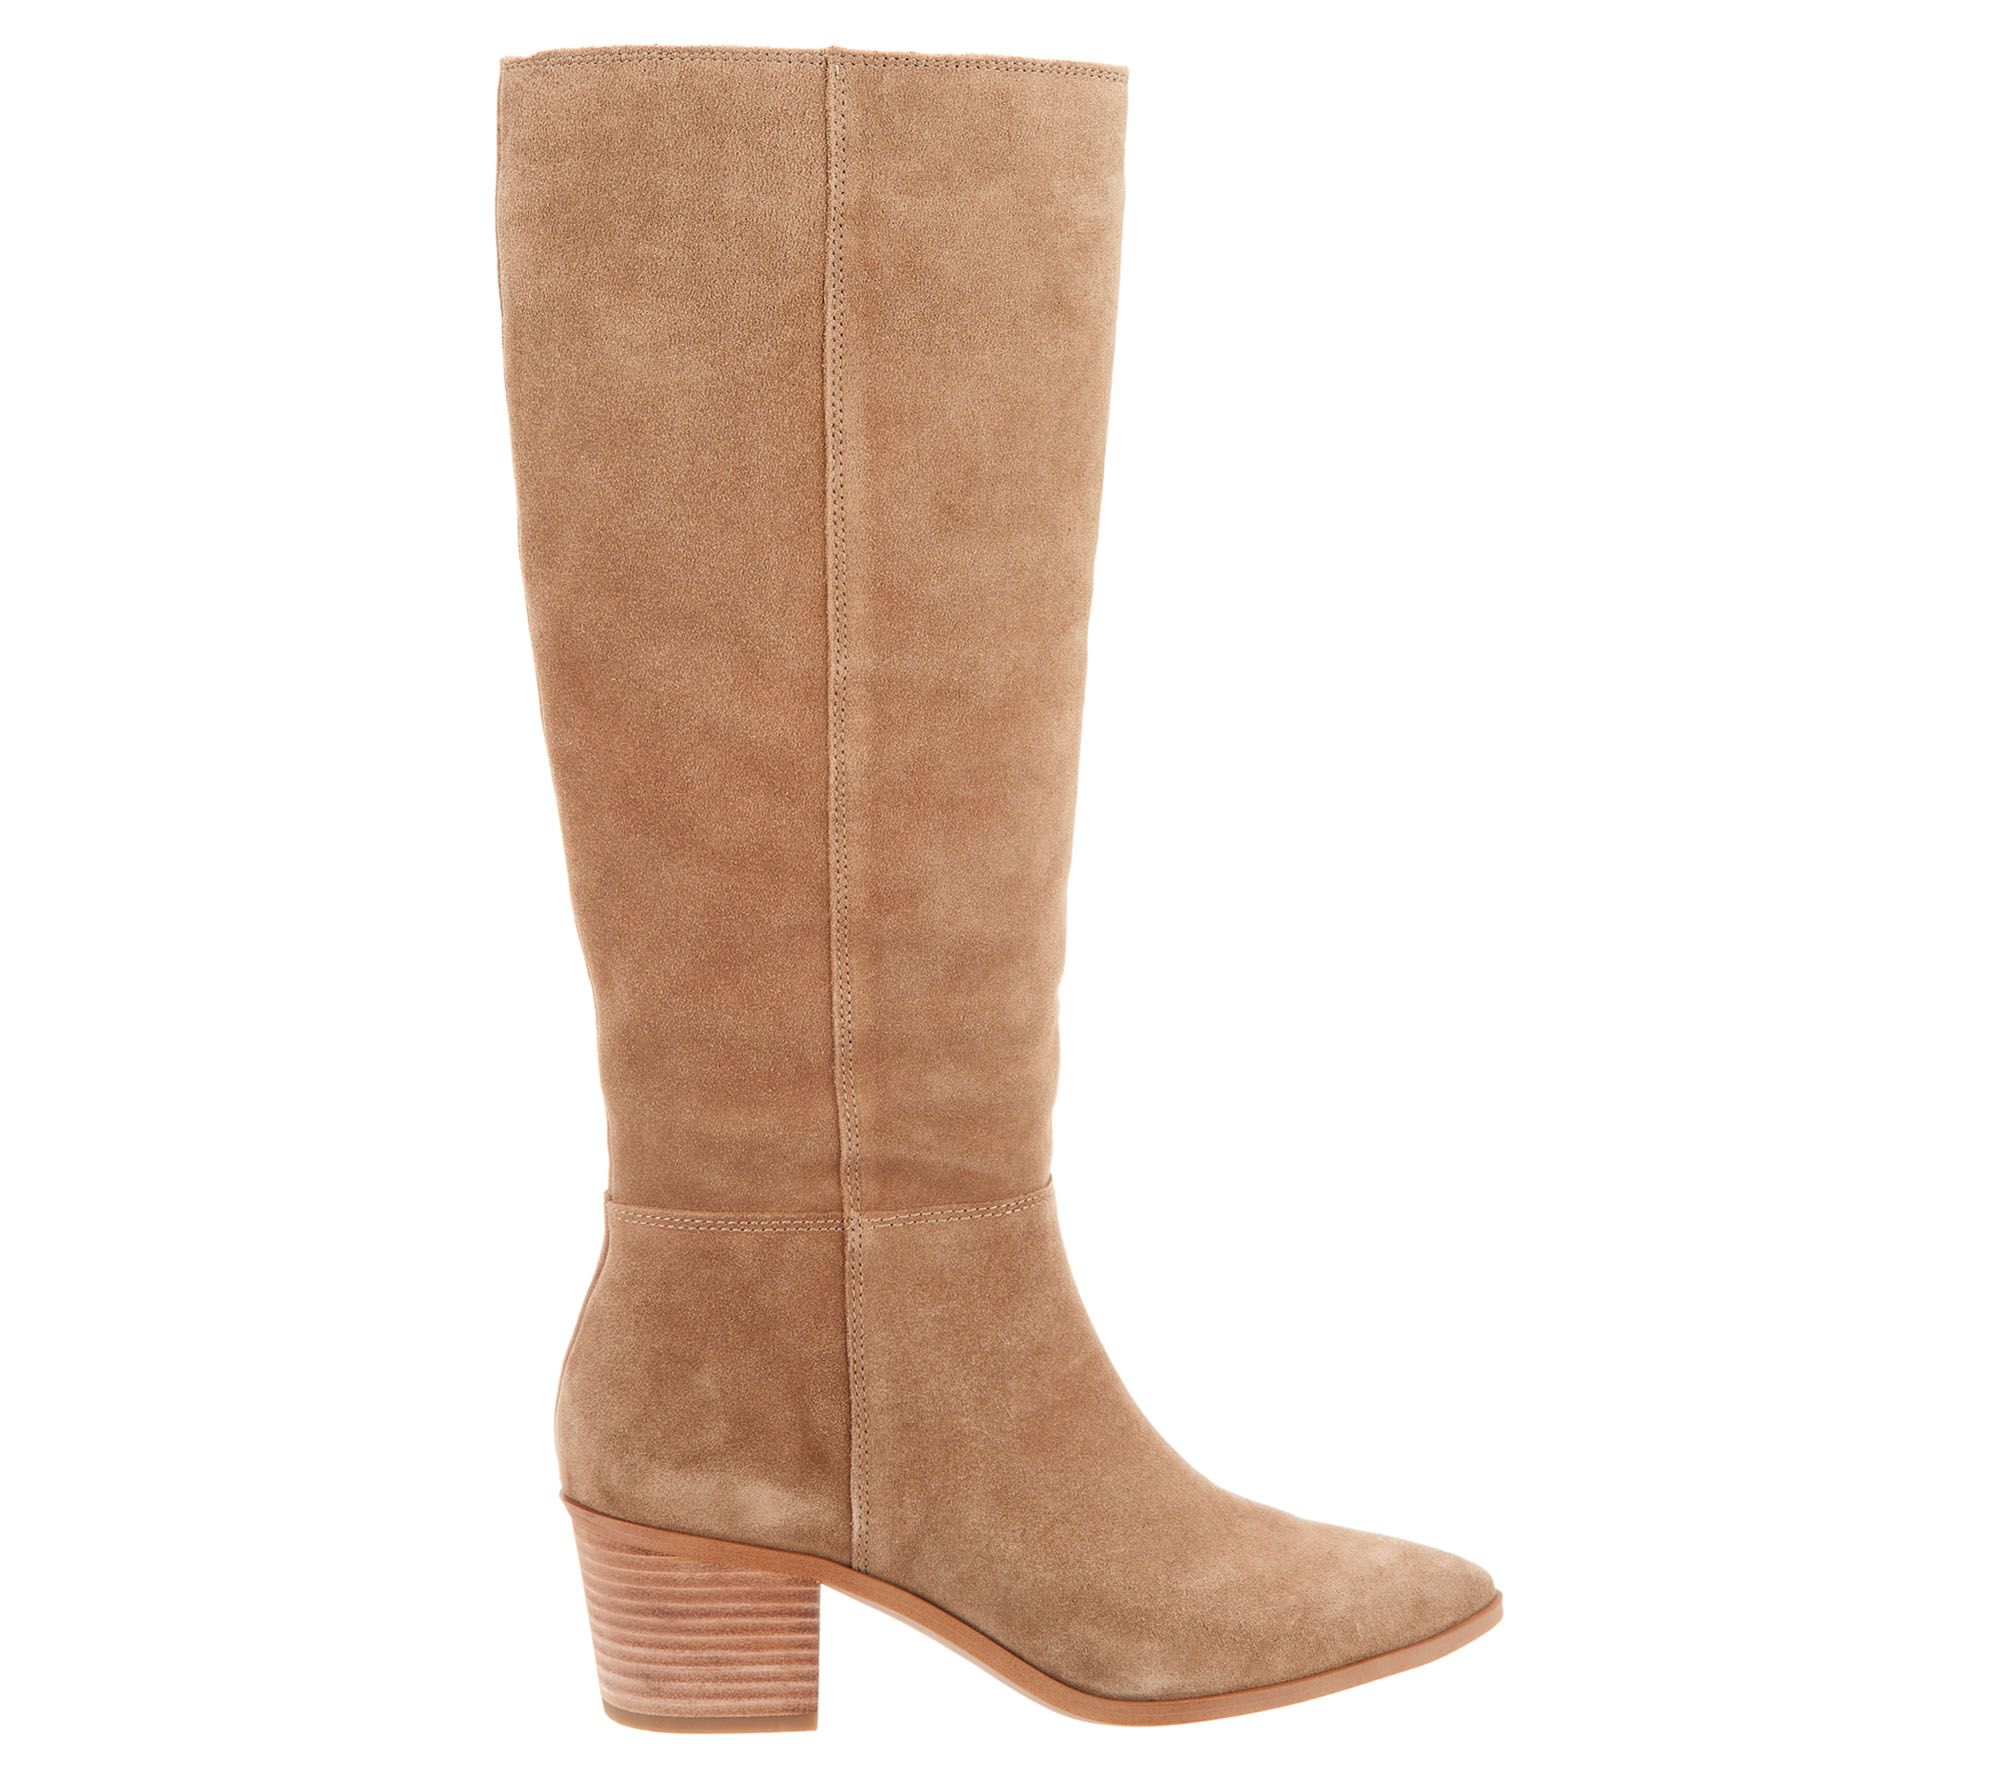 597373dba192 Franco Sarto Leather or Suede Tall Shaft Boots - Sharona - Page 1 — QVC.com